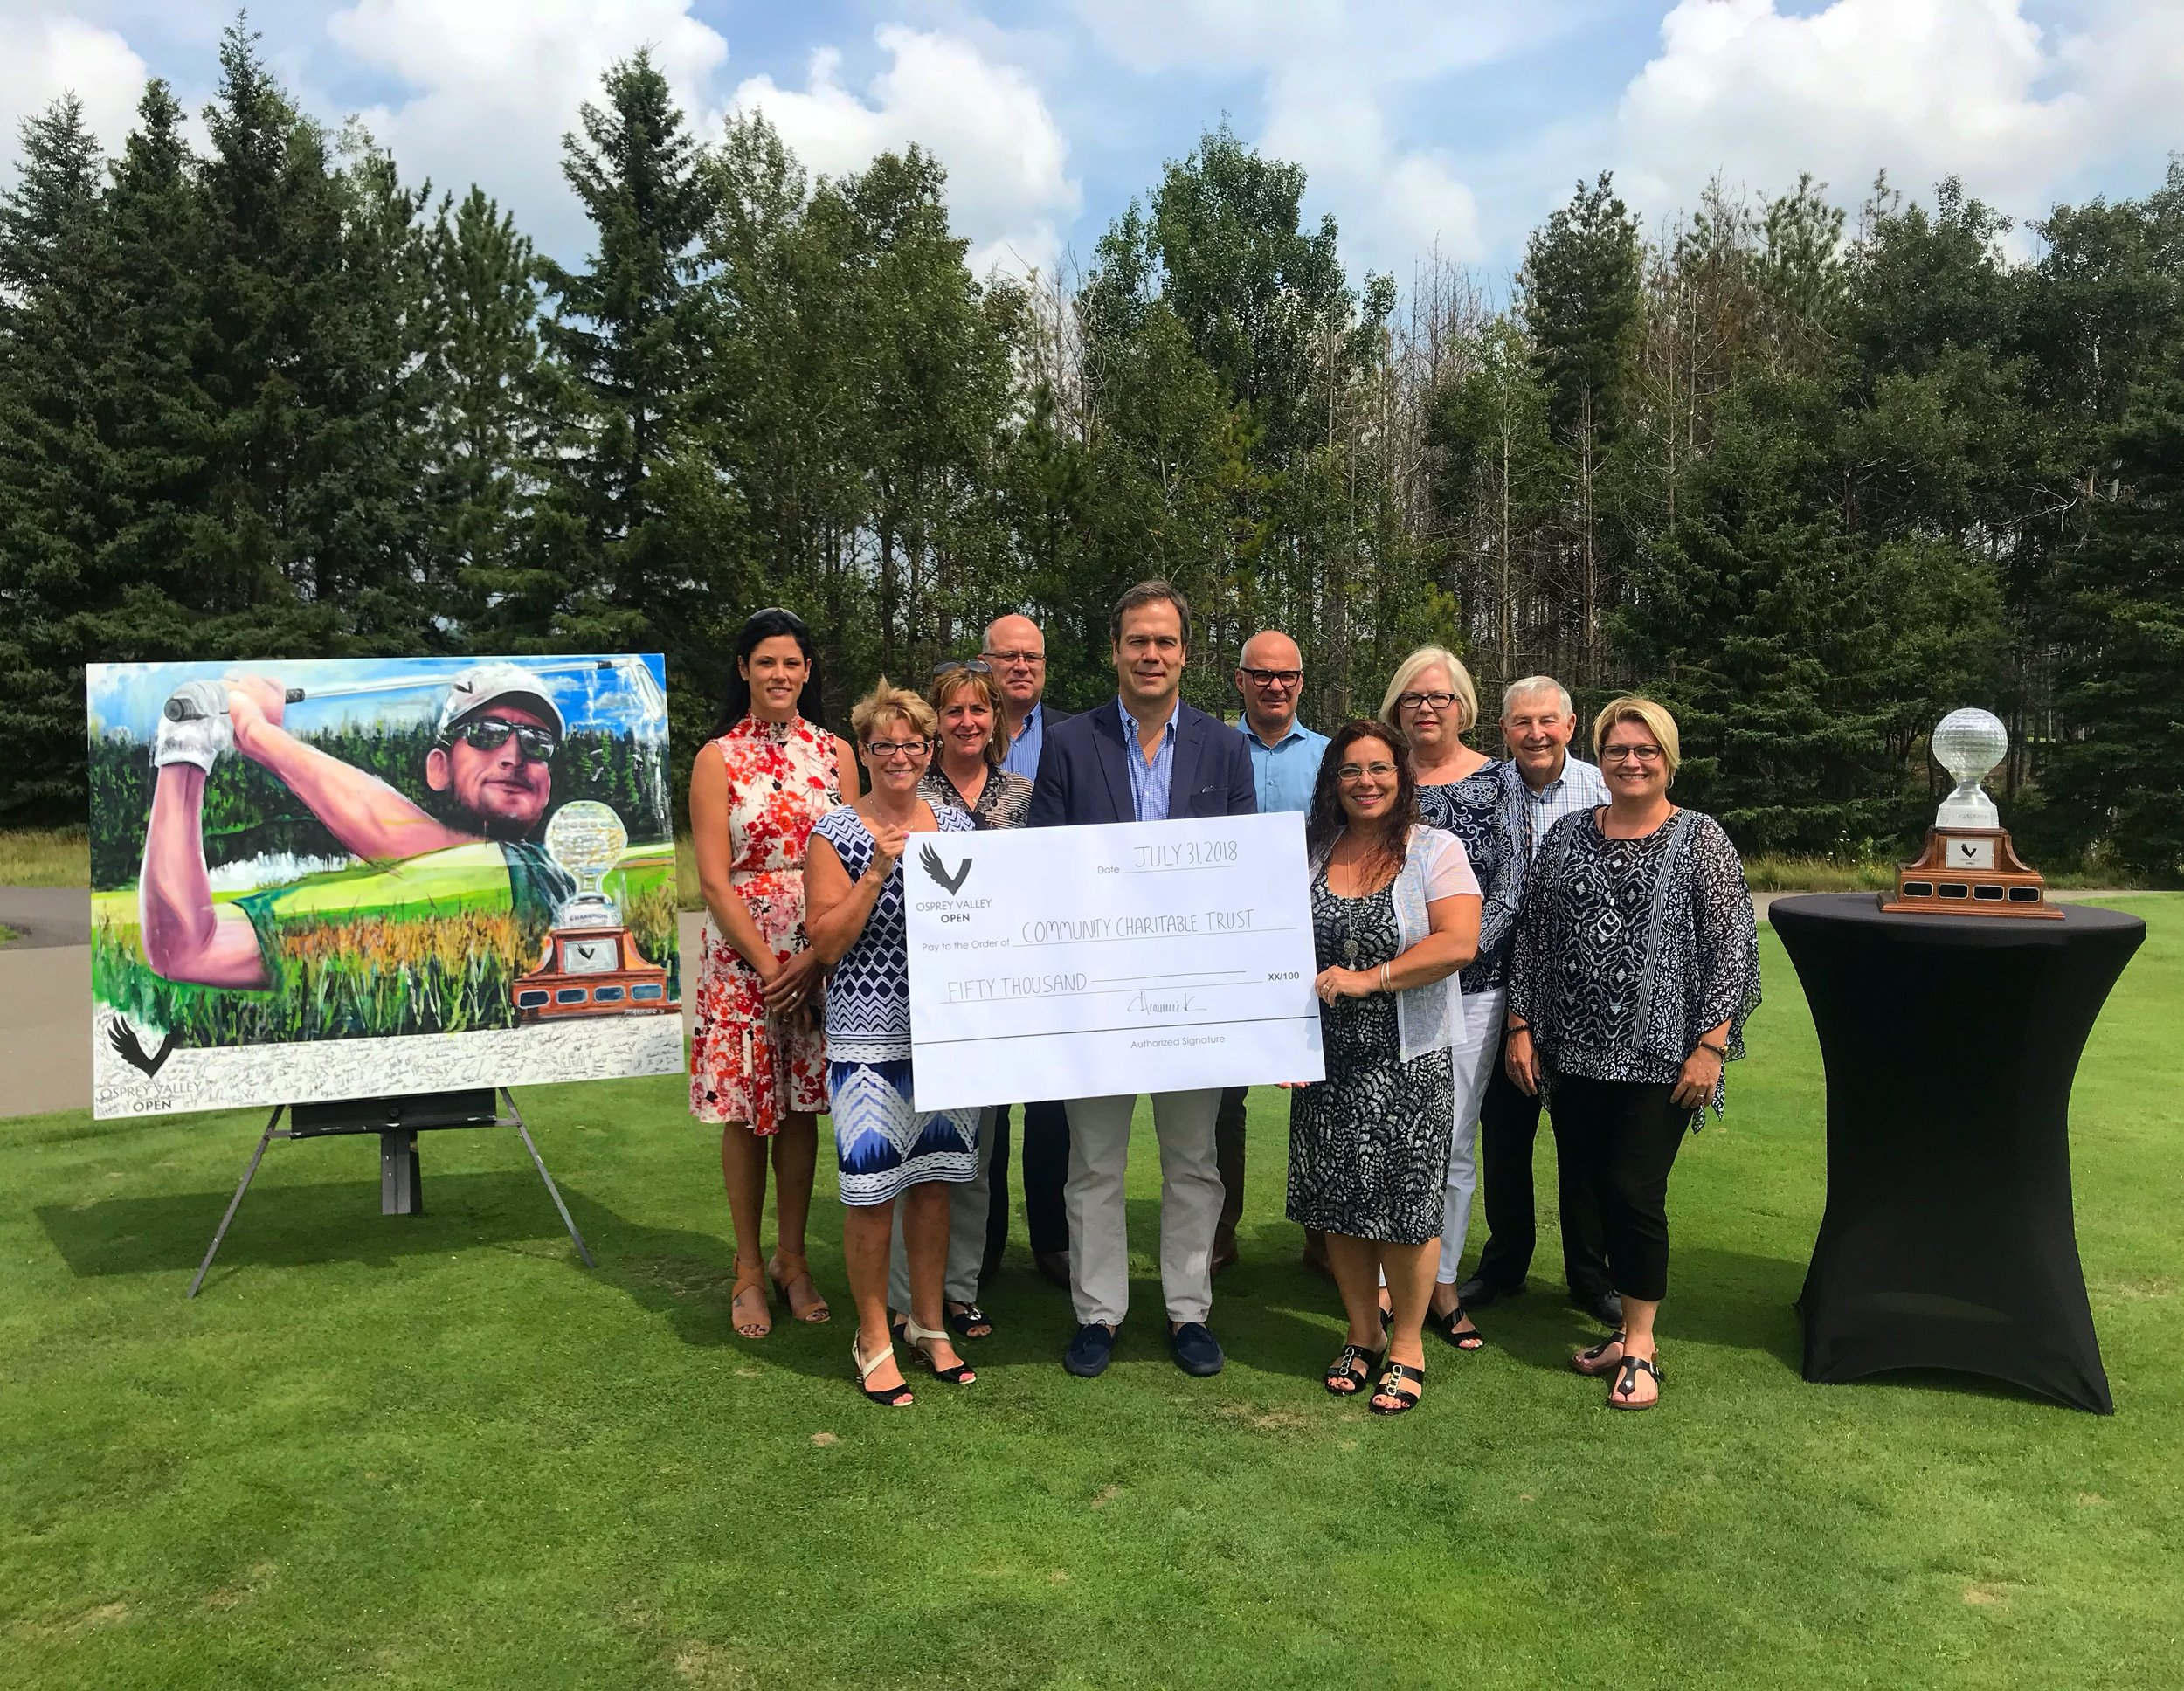 Representatives from the Town of Caledon, Credit Valley Conservation Authority, Bethell Hospice Foundation, Caledon Community Services and the Osprey Valley Open presented by Votorantim Cimentos - CBM Aggregates pose with a cheque for a $50,000 donation from the 2018 event.